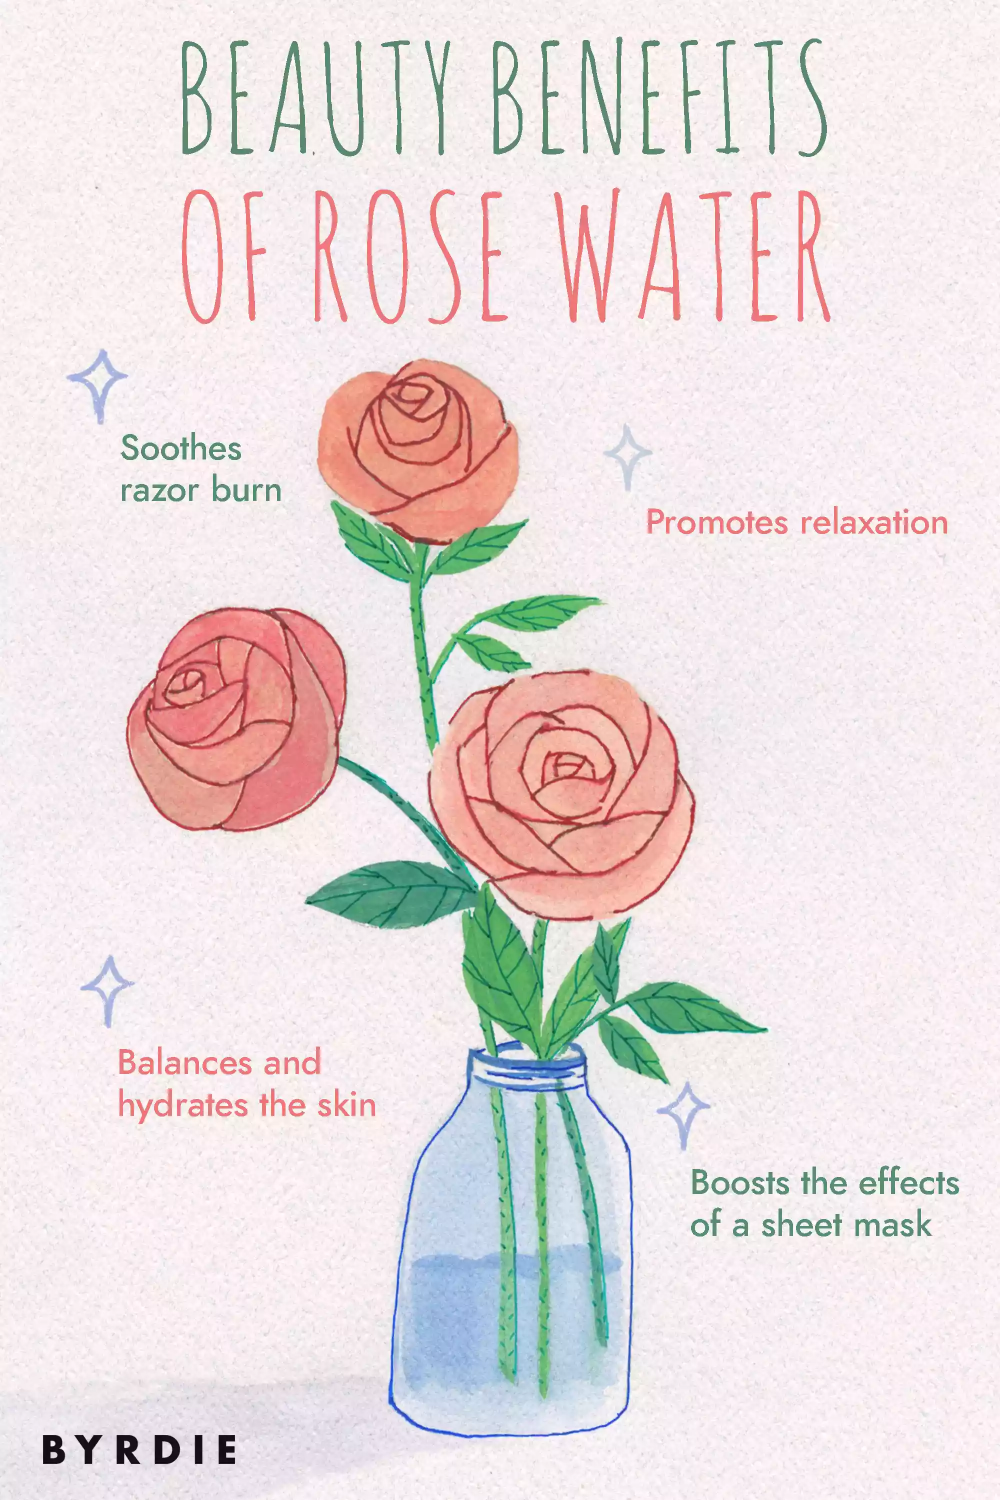 10 Ways To Use Rose Water To Make Your Beauty Routine 10 Times Better Rose Water For Skin Rose Water Rose Water Diy